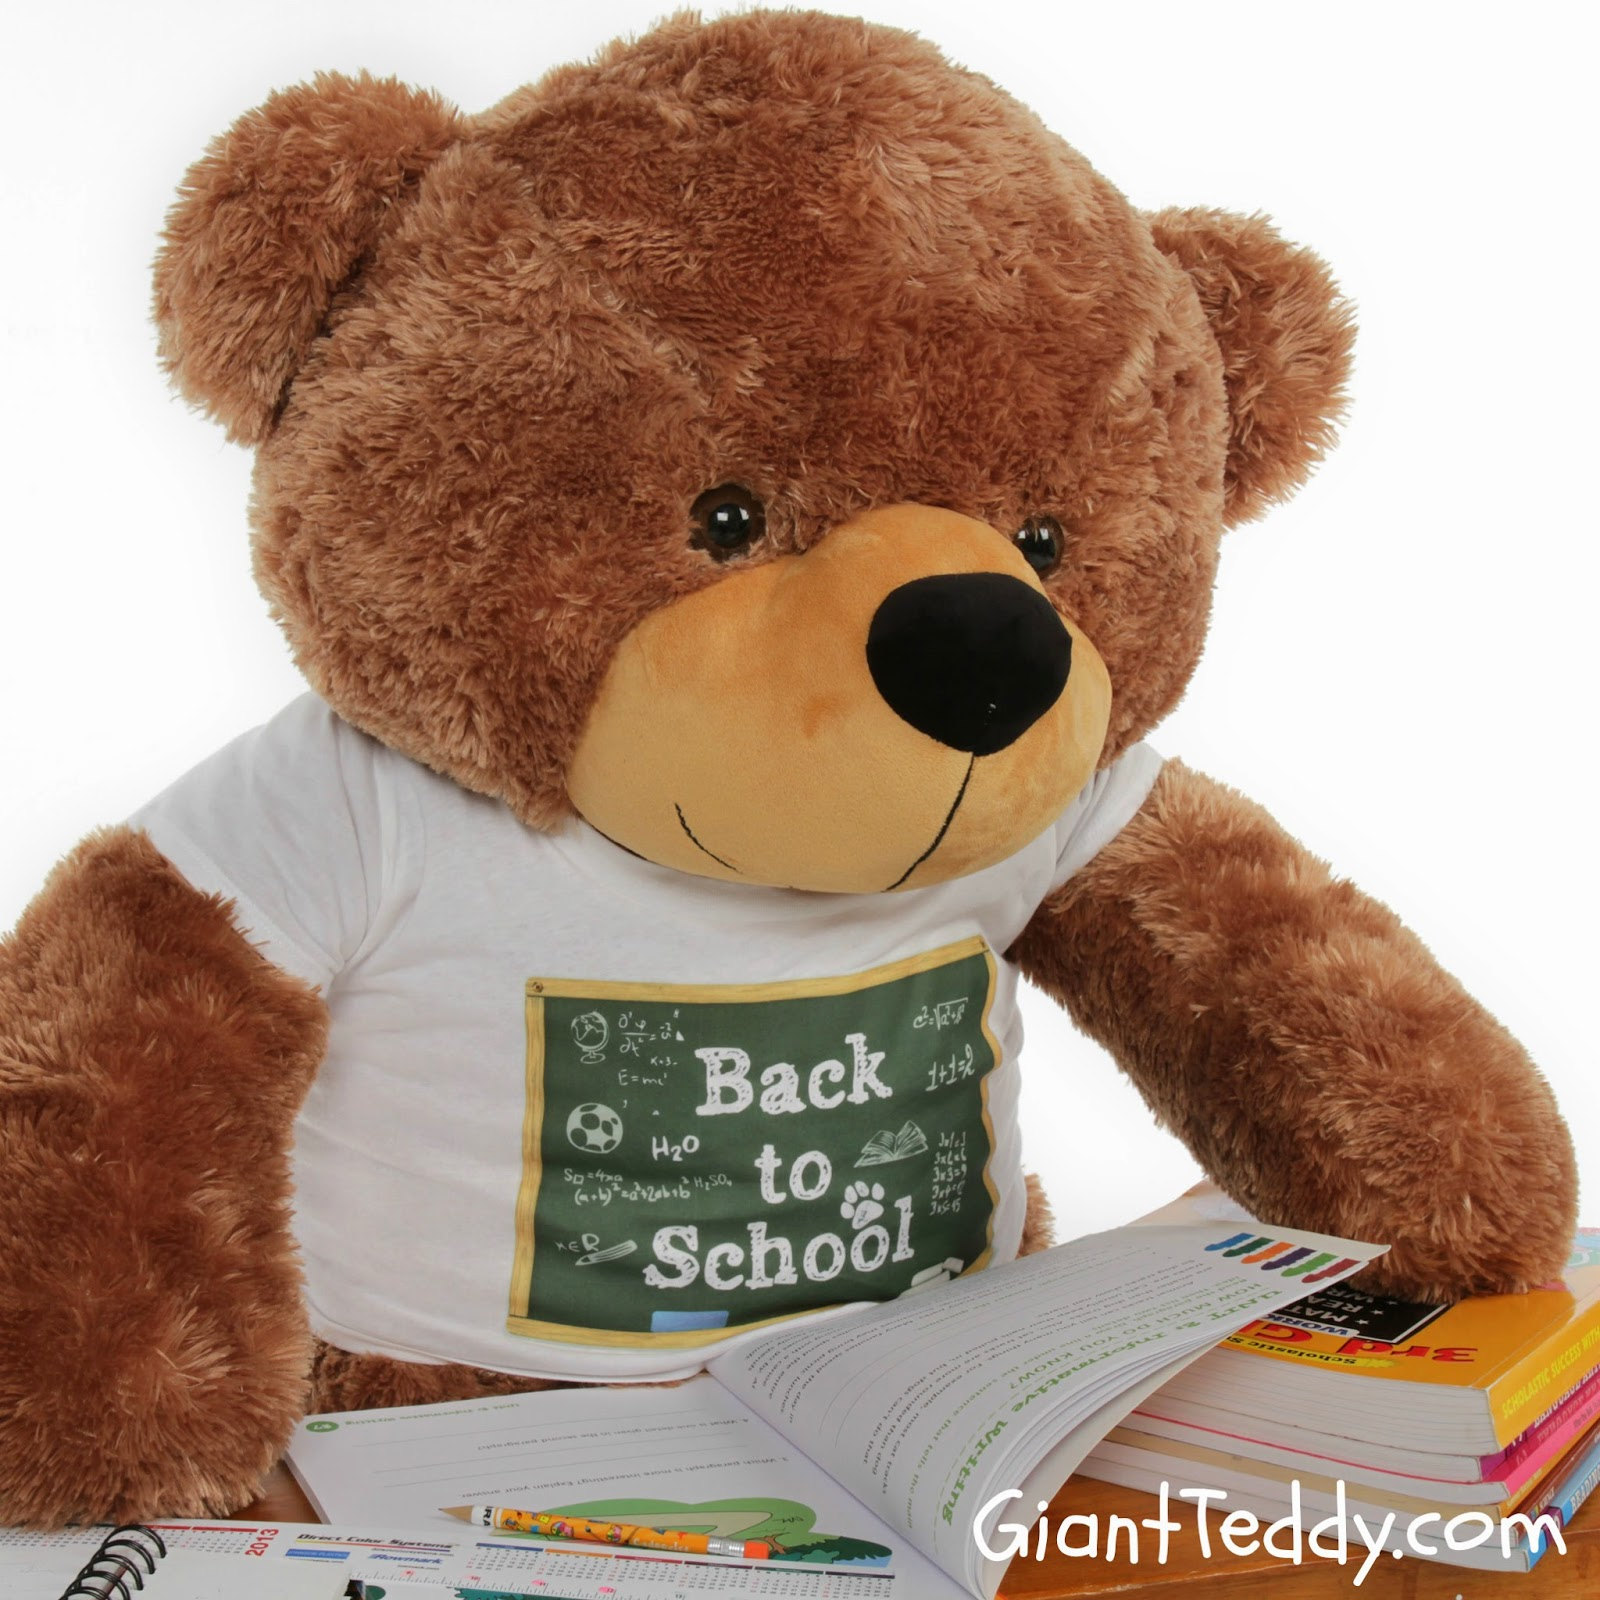 4ft mocha teddy bear Sunny Cuddles in adorable chalkboard shirt